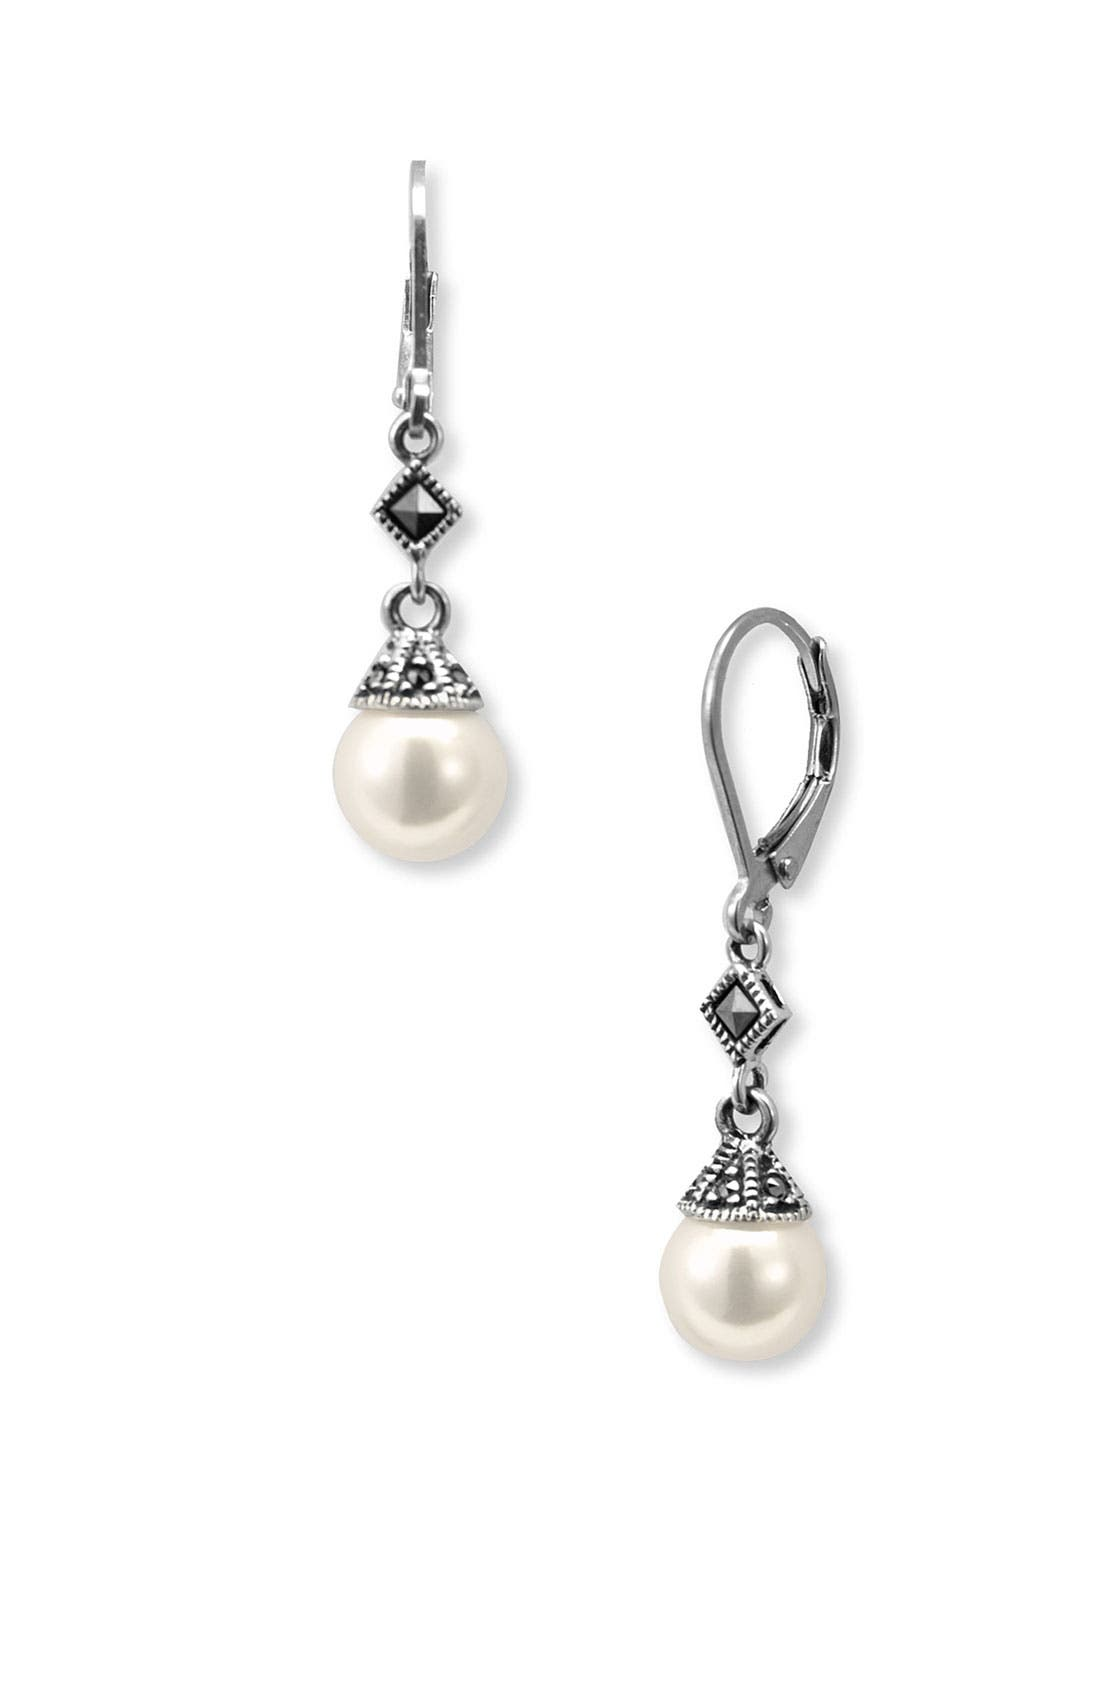 Main Image - Judith Jack Imitation Pearl Drop Earrings